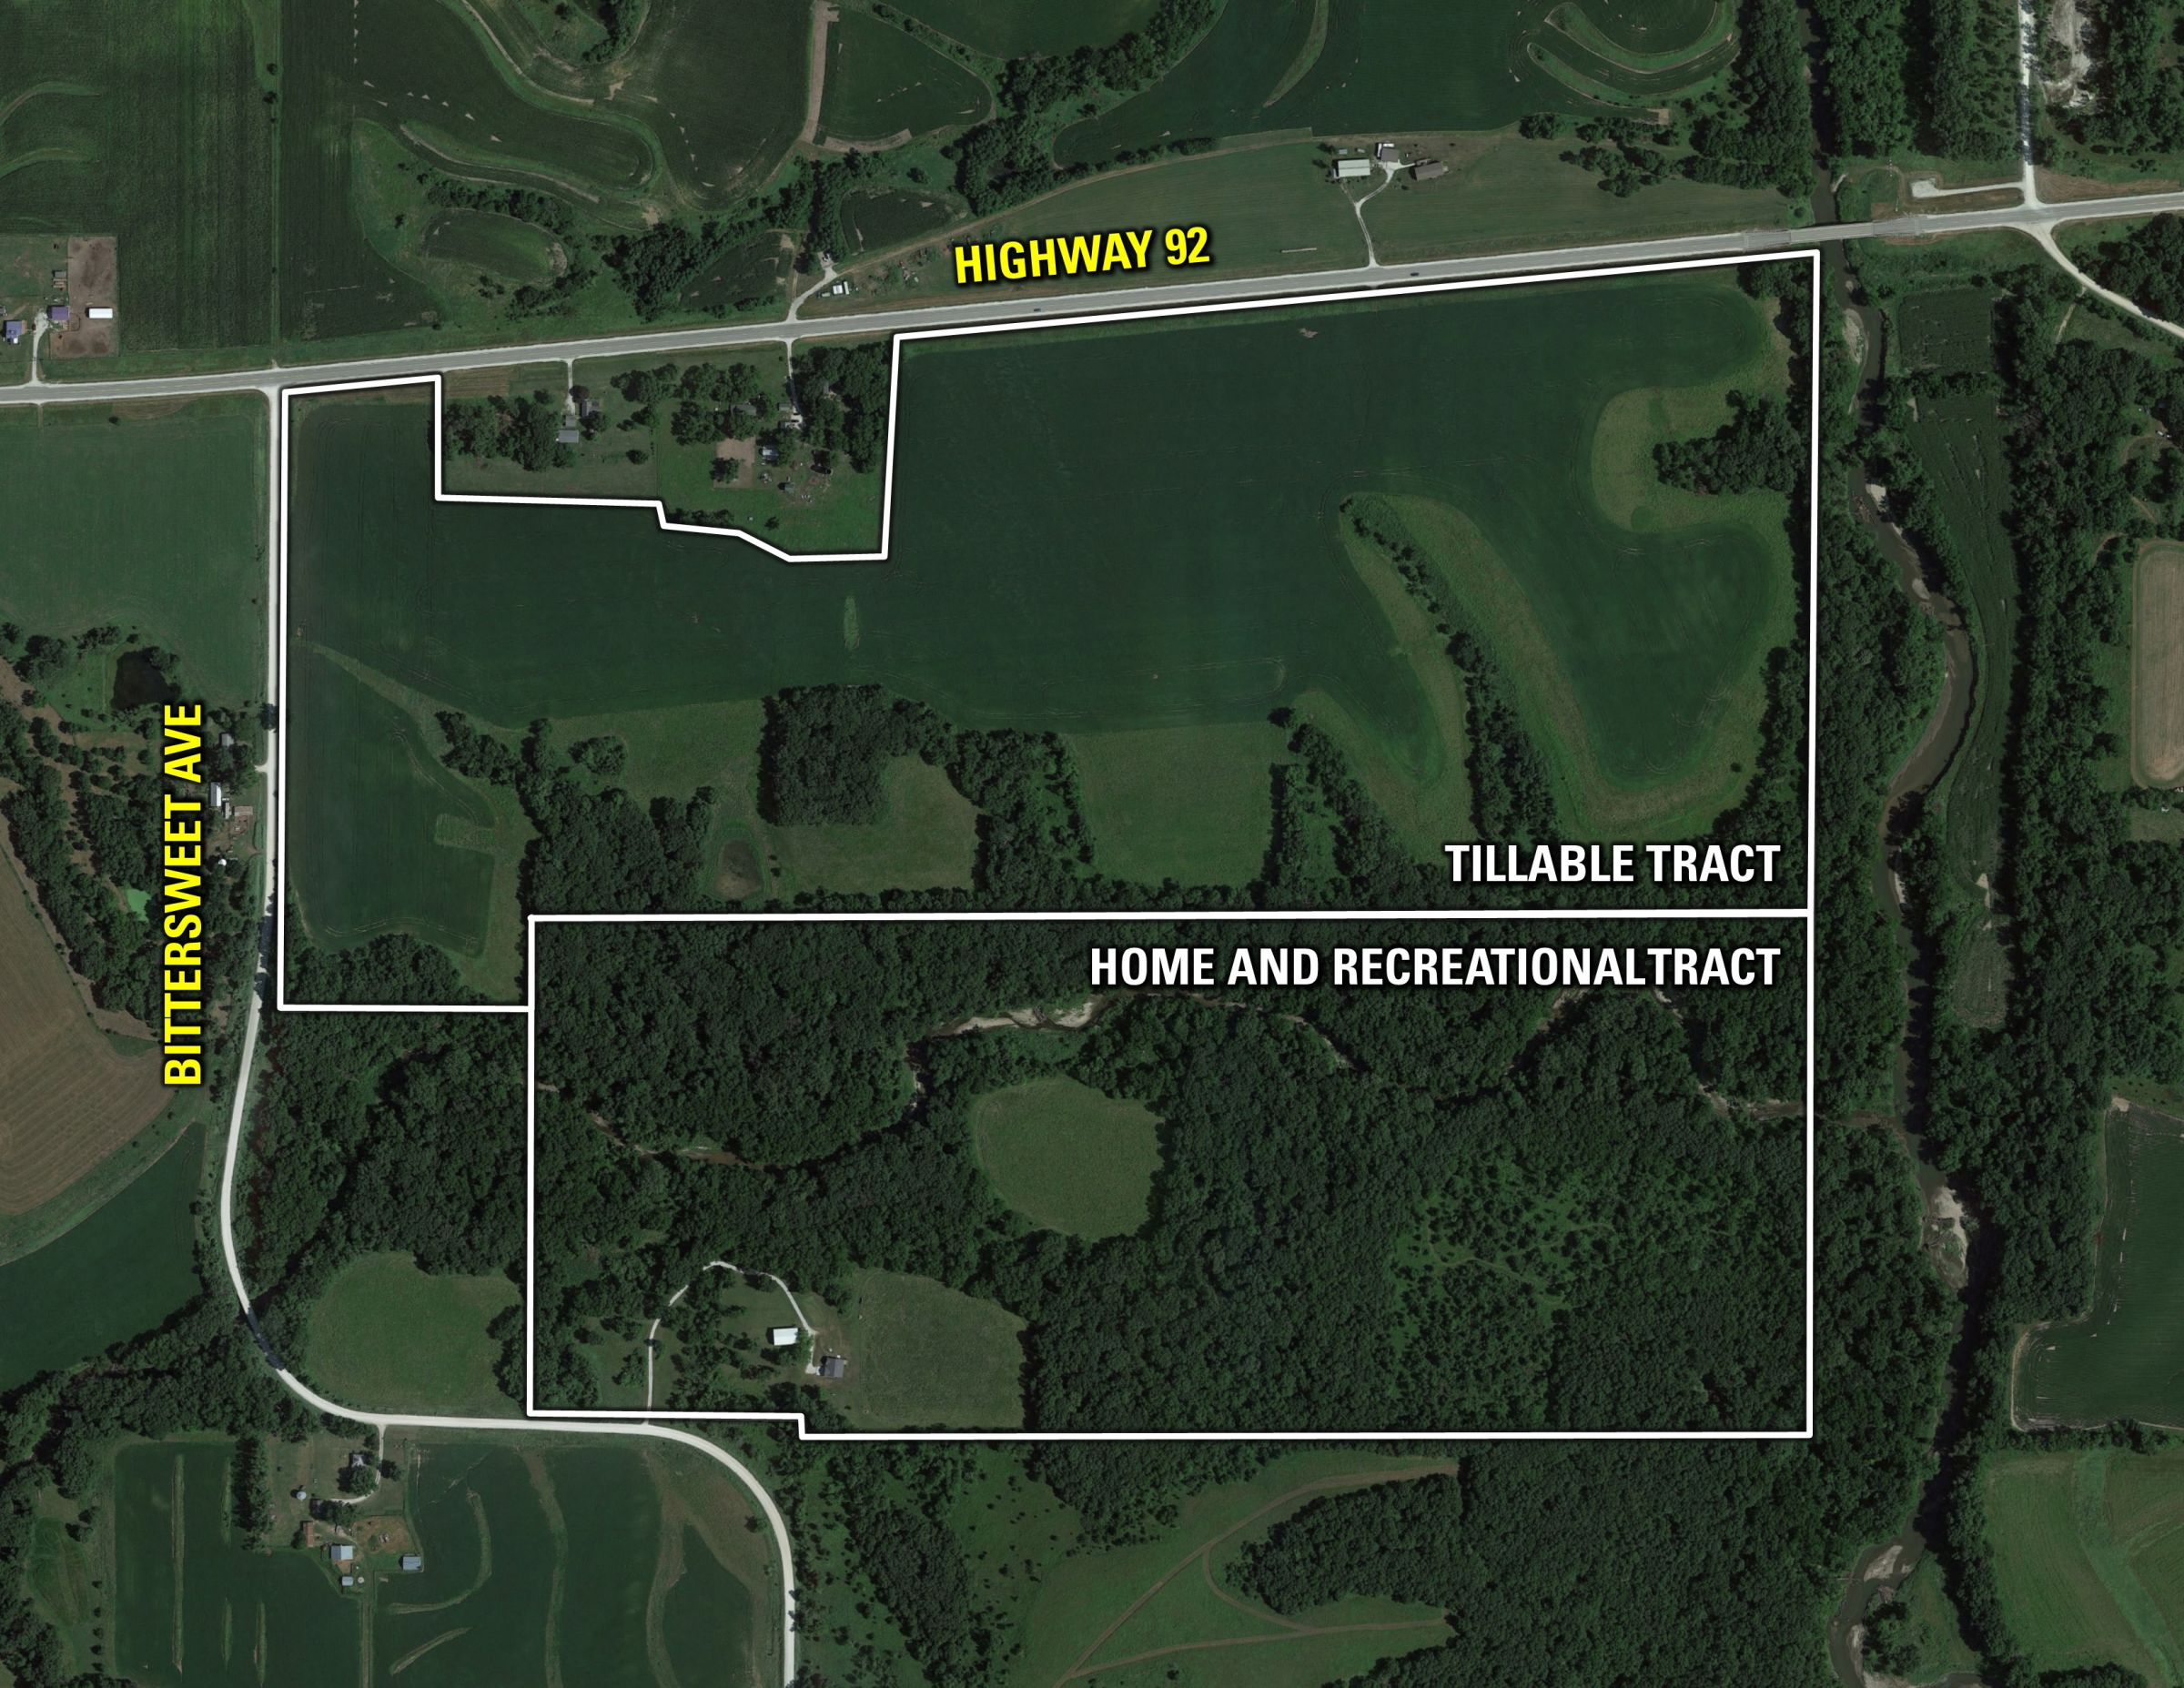 residential-land-madison-county-iowa-106-acres-listing-number-15123-2-2020-08-19-190935.jpg